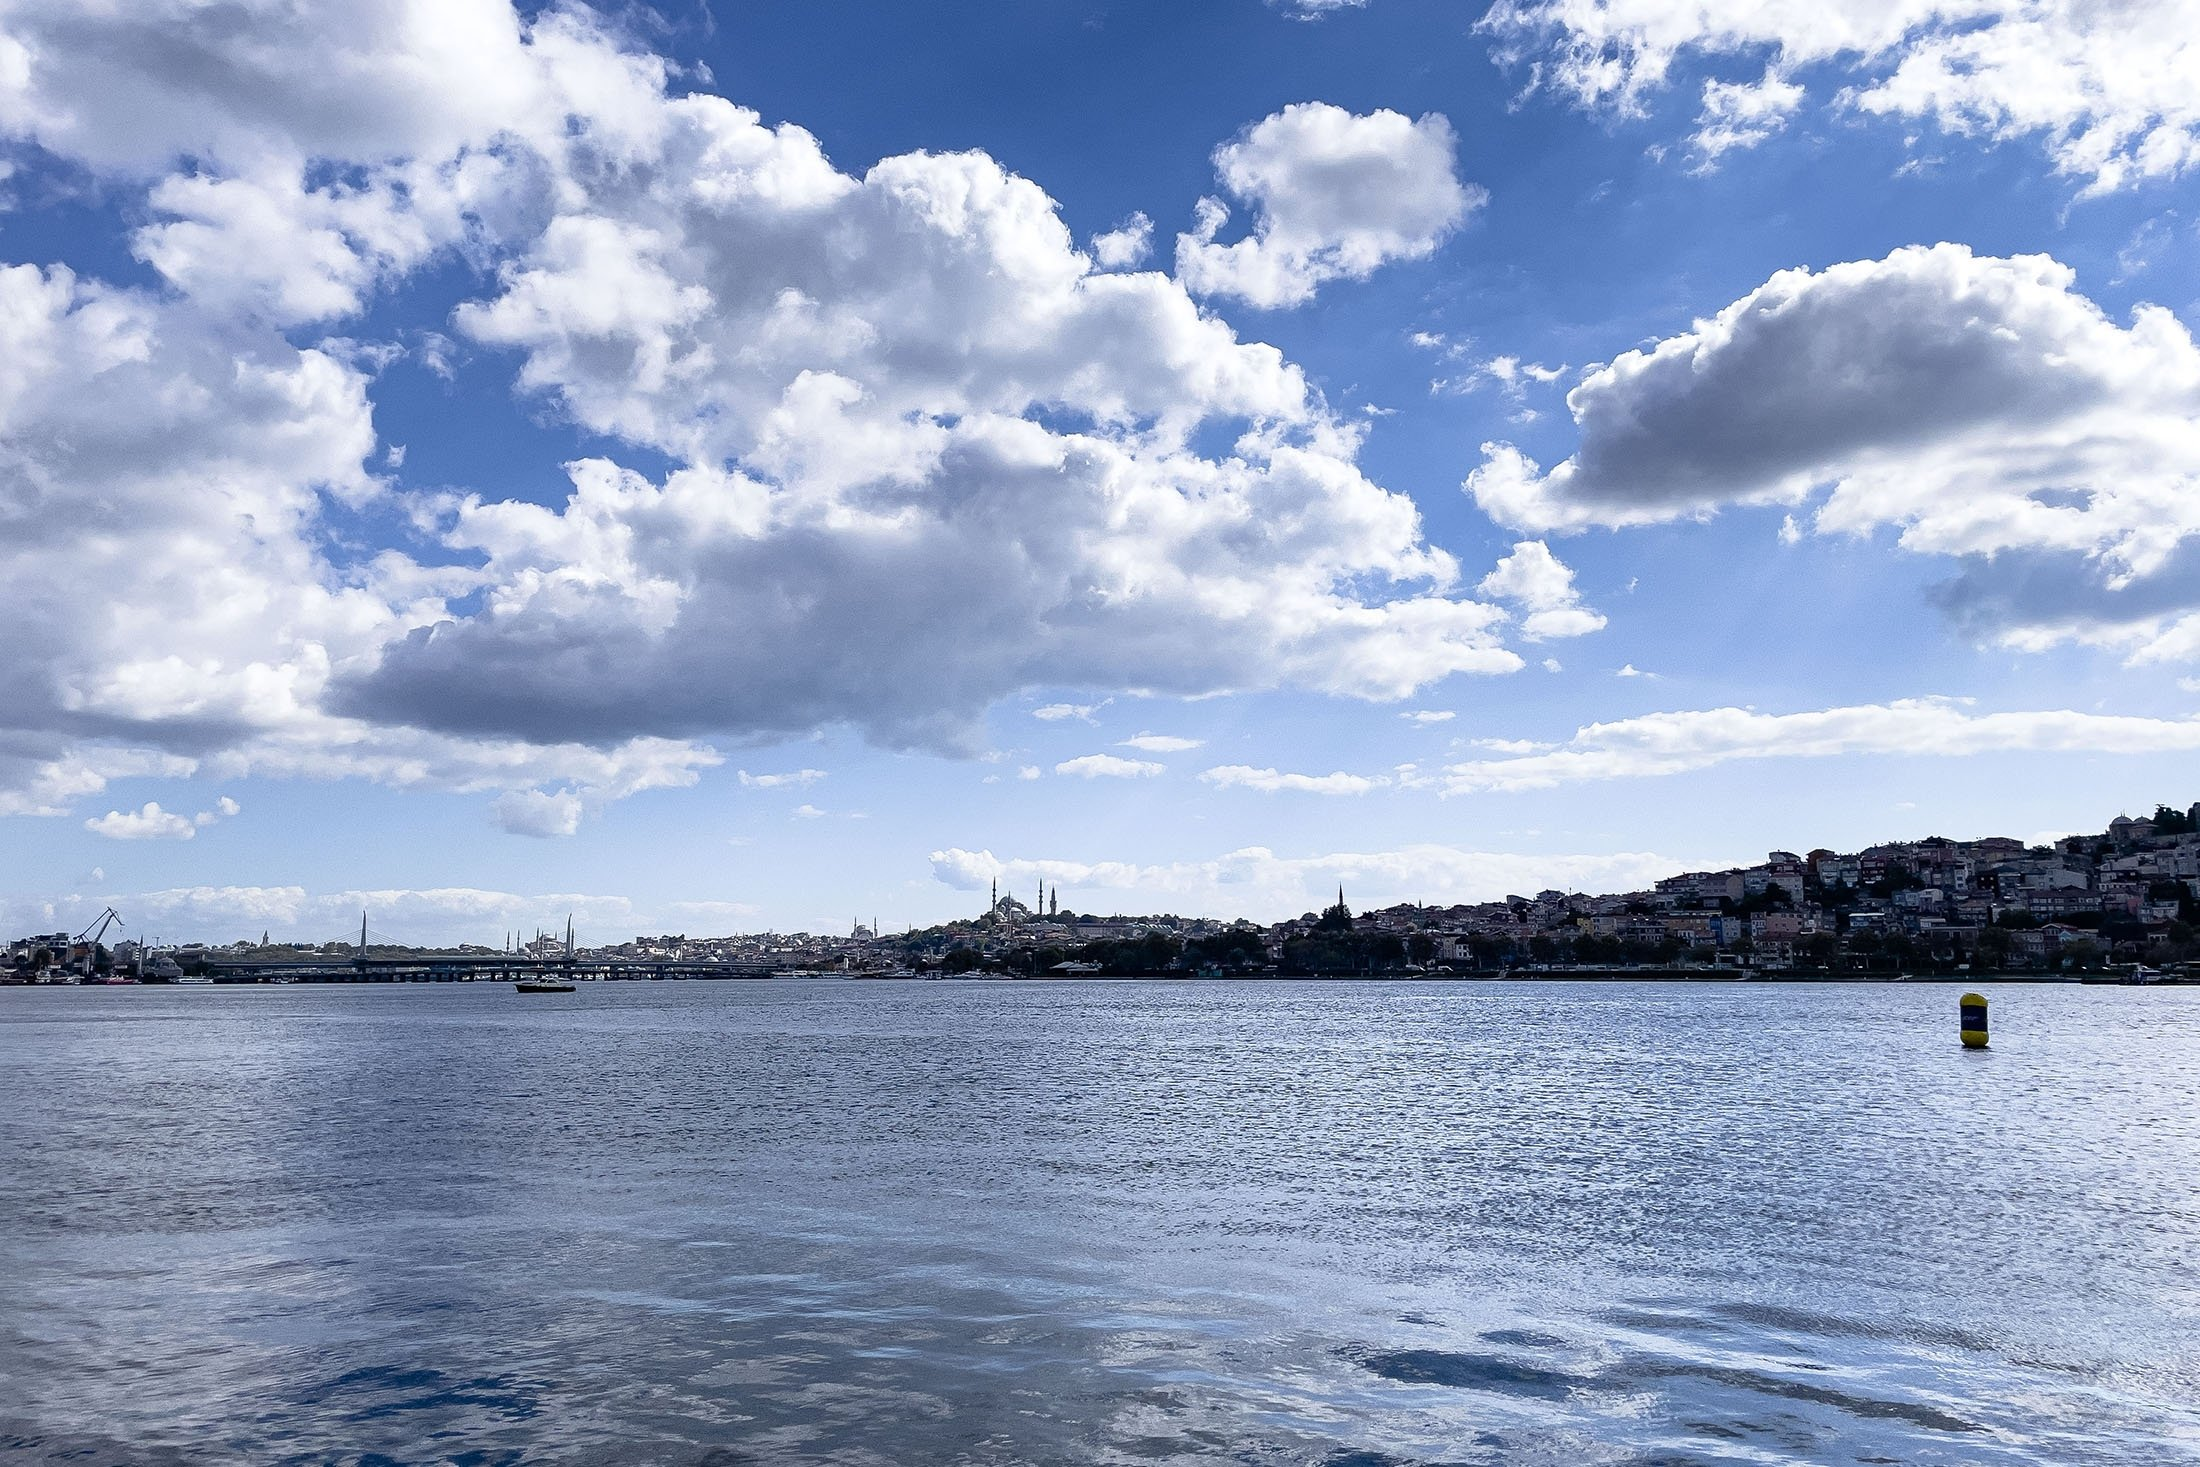 The view of the Golden Horn as seen from the Contemporary Istanbul